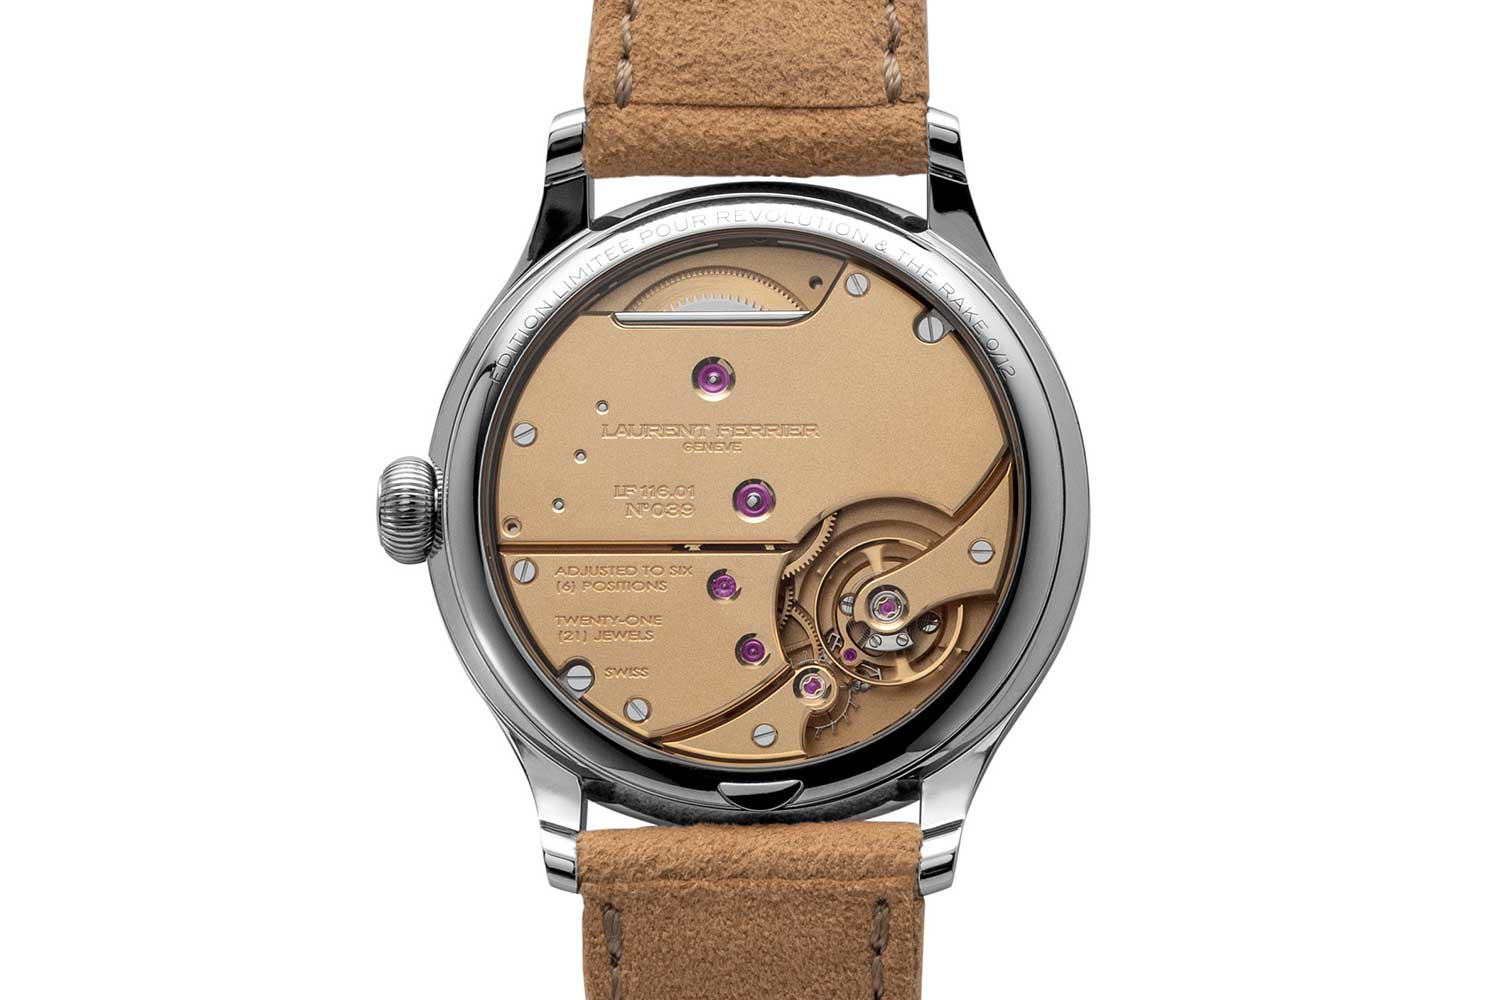 Laurent Ferrier Classic Origin for Revolution & The Rake has its movement treated in a special yellow-gold finish that is micro-sandblasted, used previously in the Montre École watch (©Revolution)